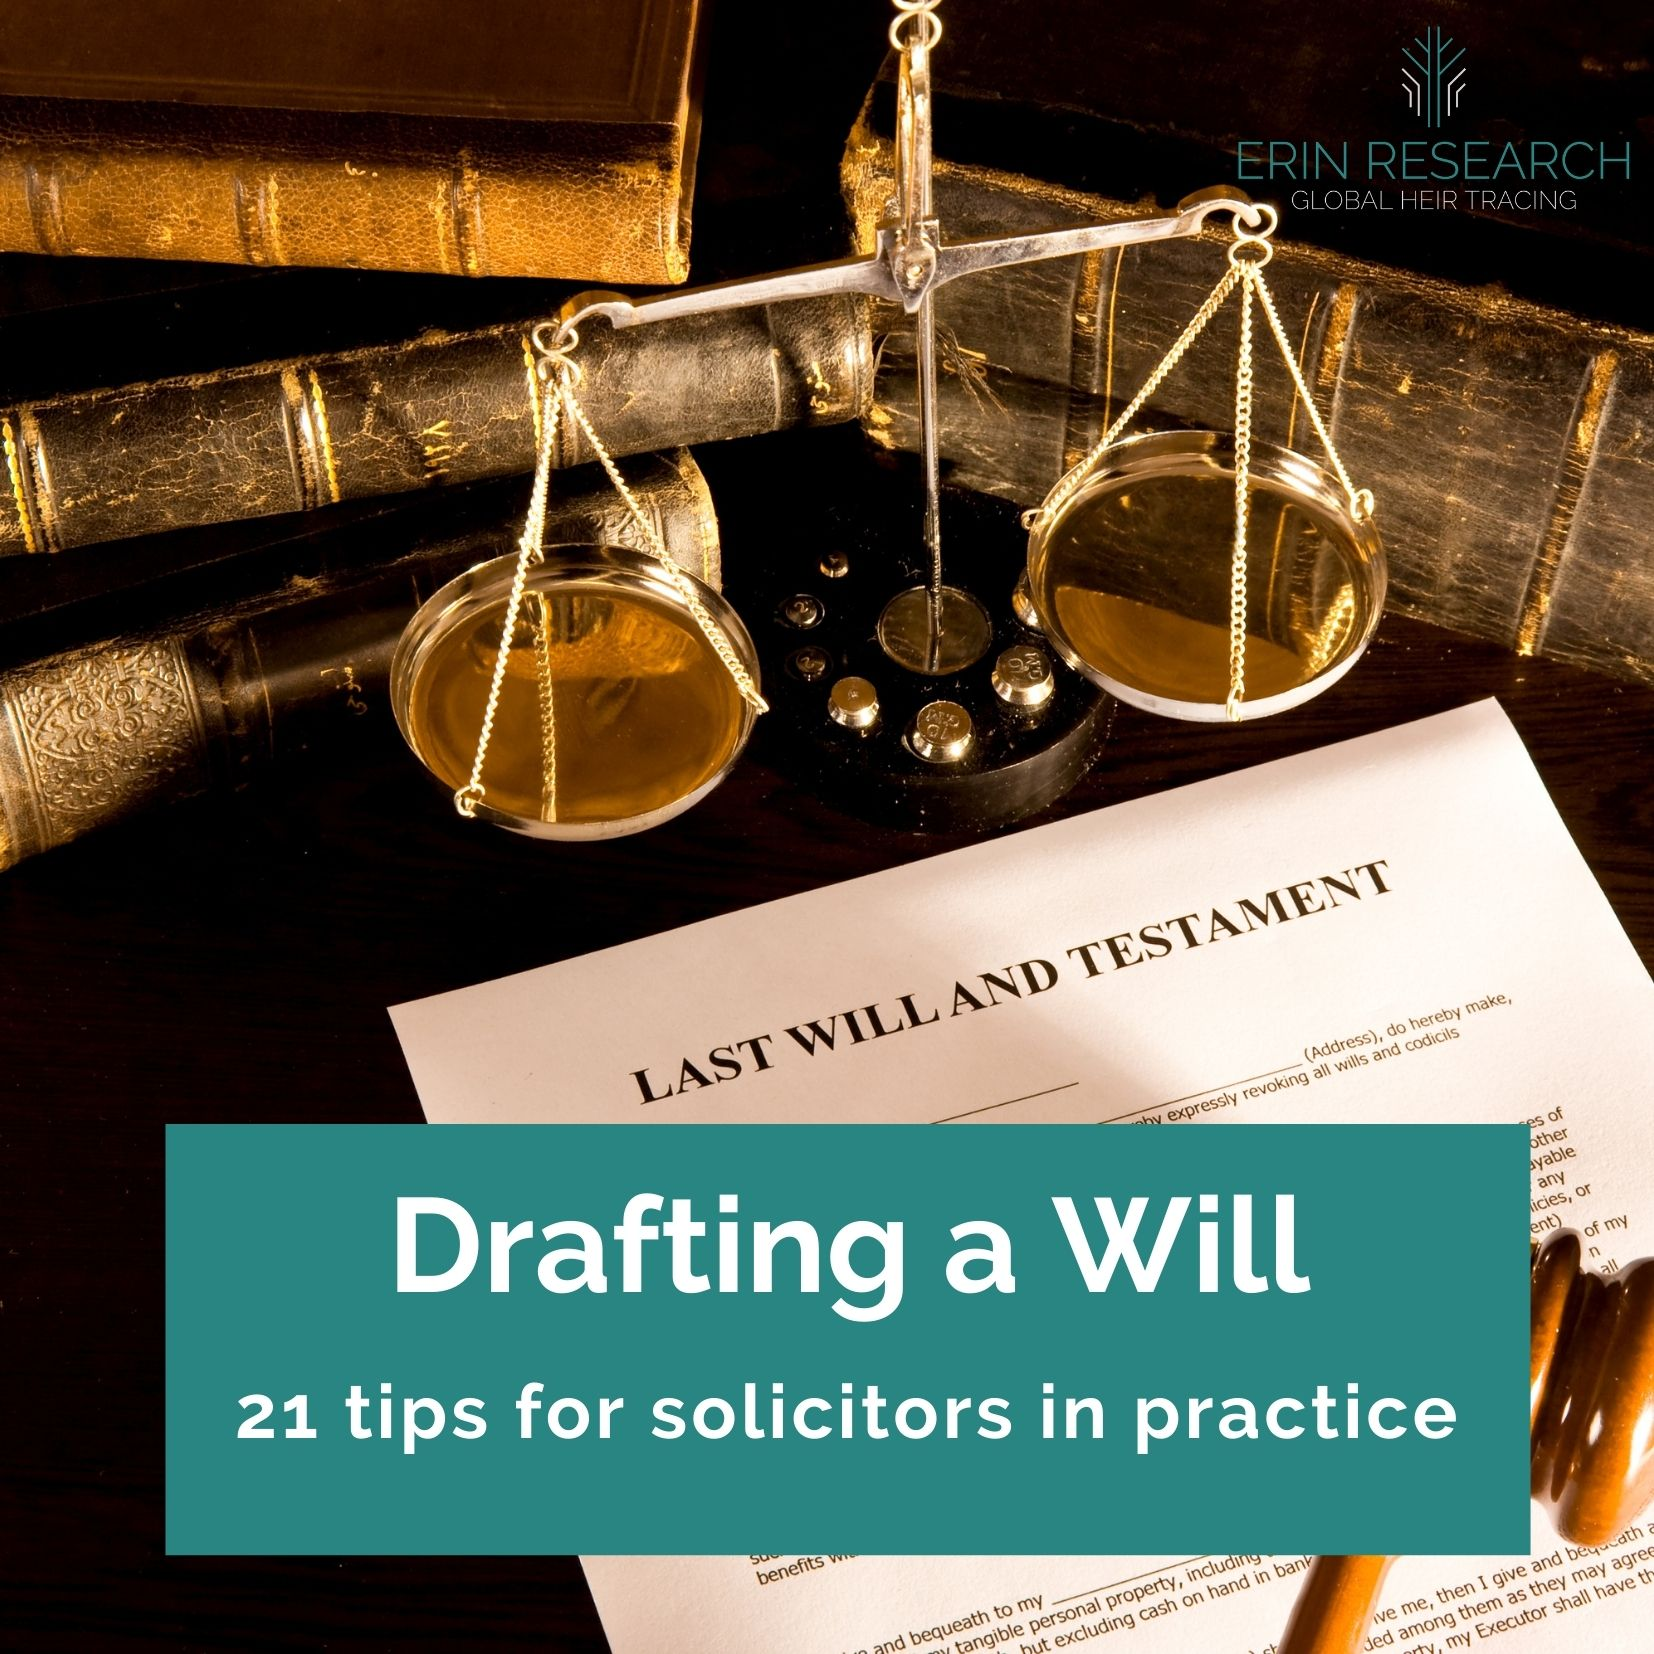 Drafting a will - 21 tips for solicitors - practice tips for drafting wills